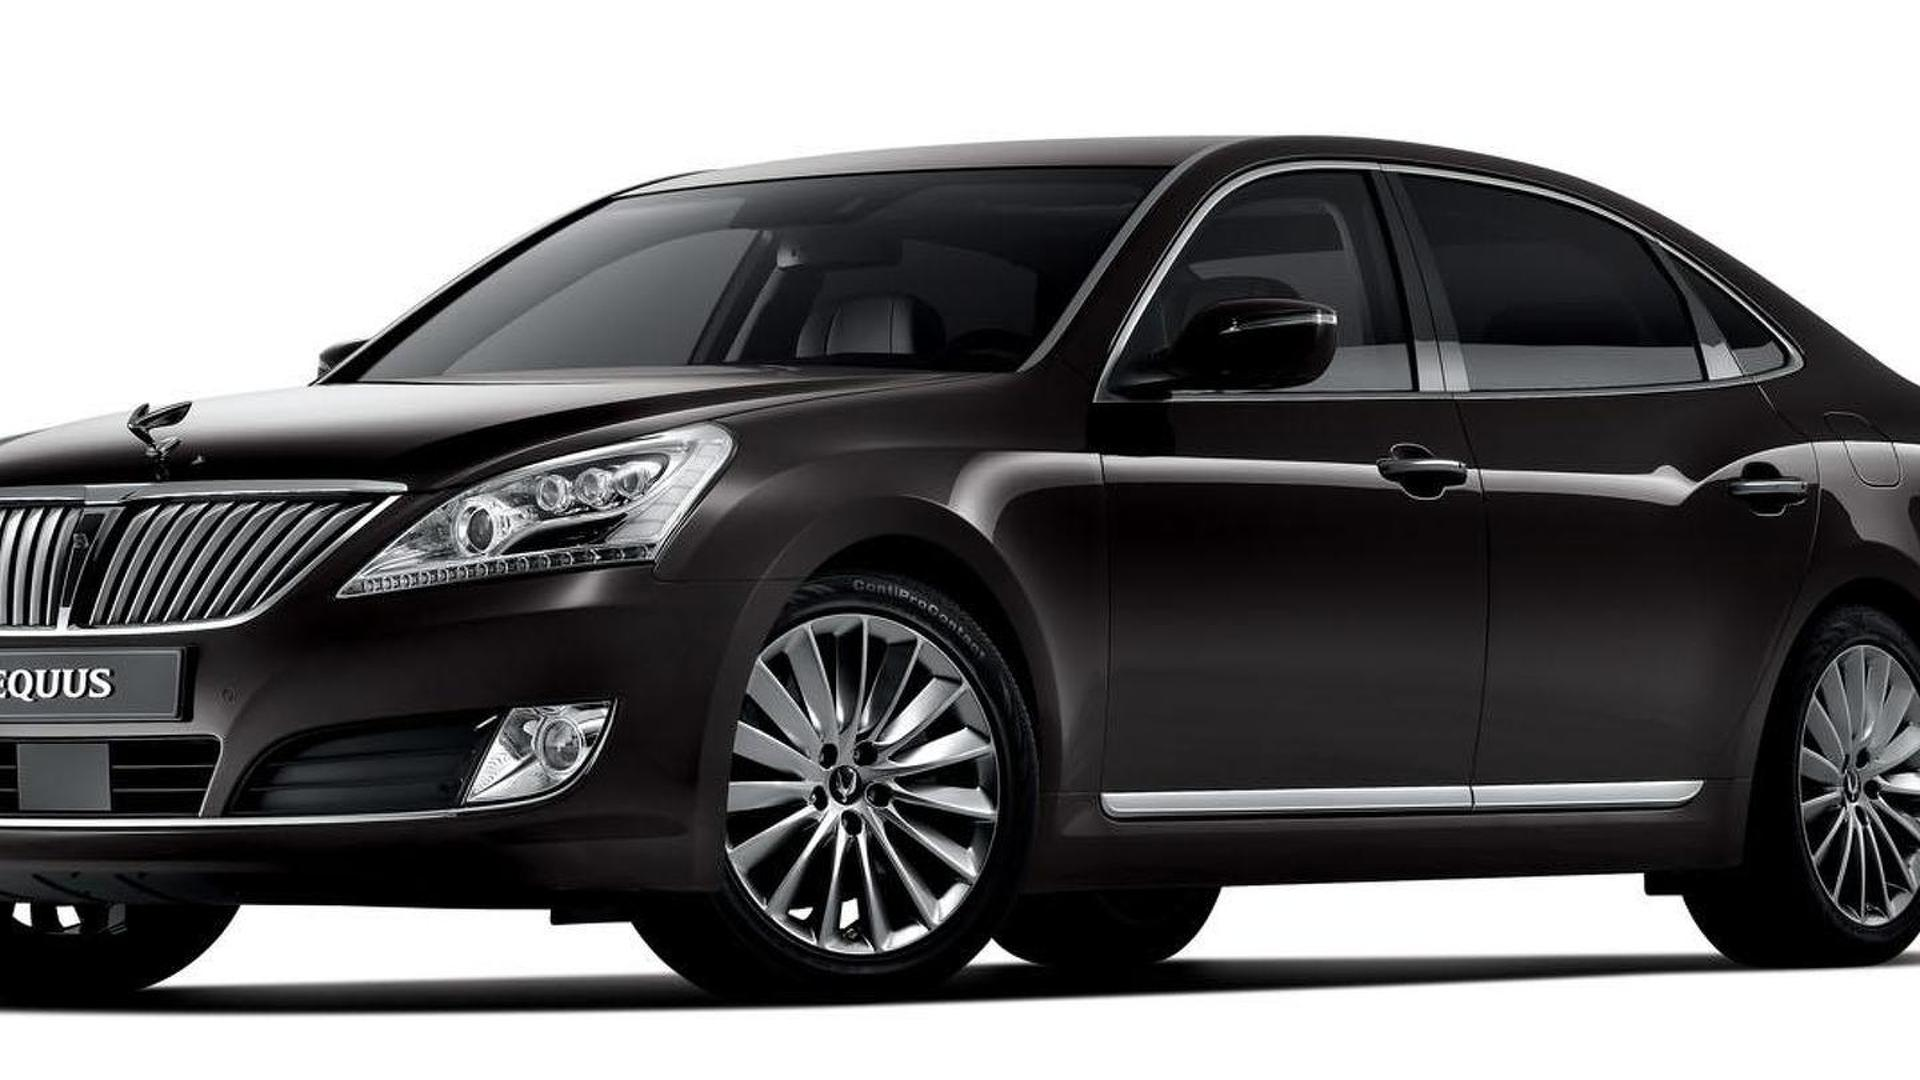 Research 2012                   HYUNDAI Equus pictures, prices and reviews